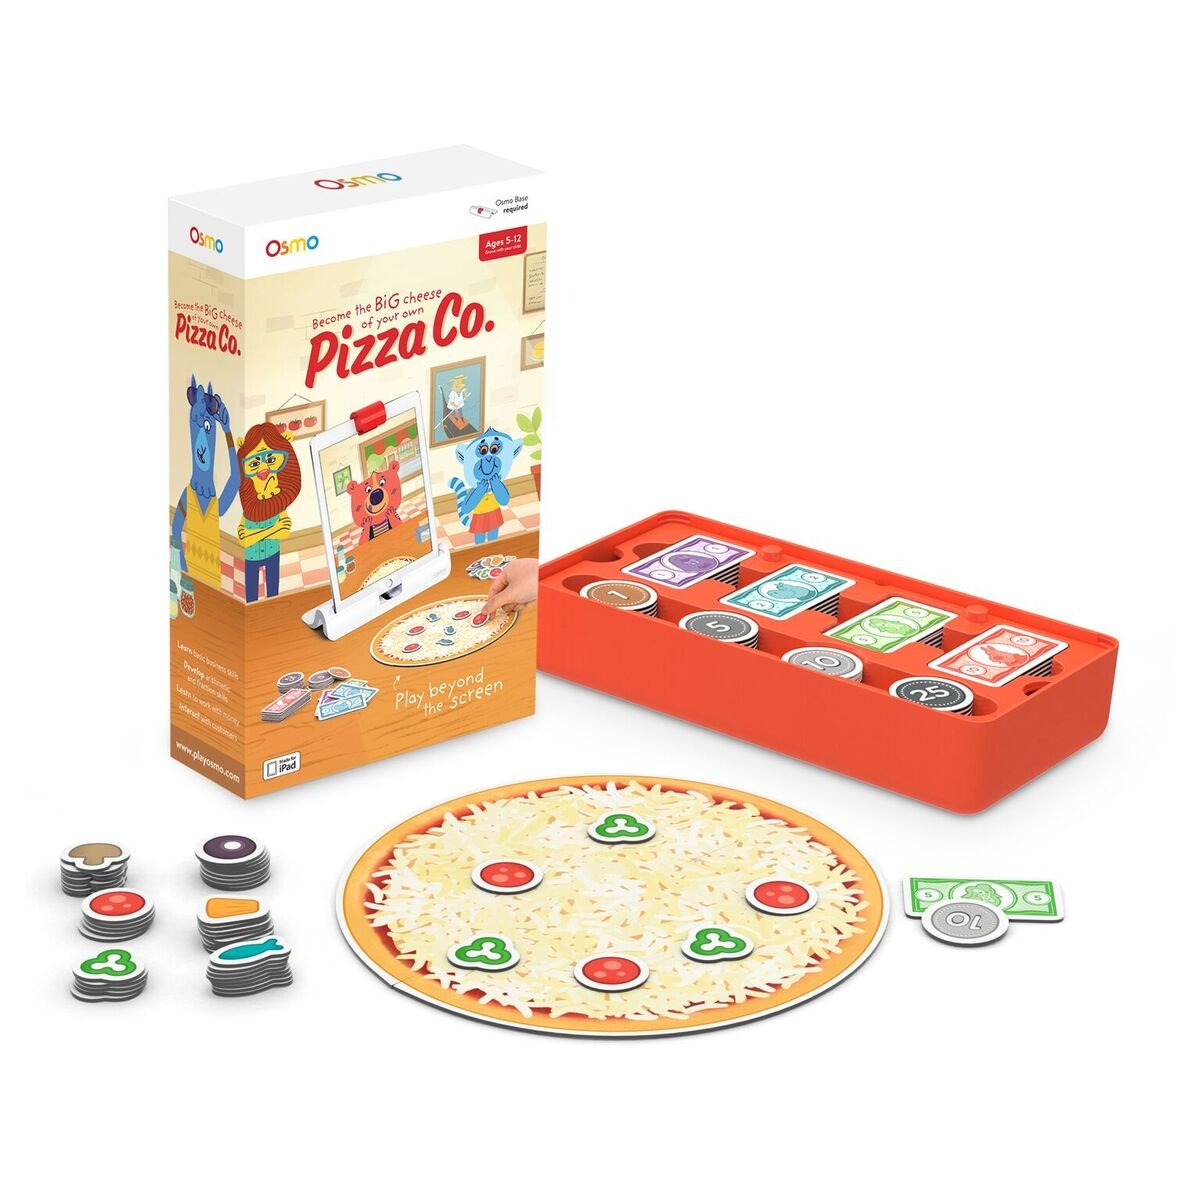 Osmo - Pizza Co. Game - Ages 5-12 - Communication Skills & Mental Math - For iPad and Fire Tablet (Osmo Base Required) by Osmo